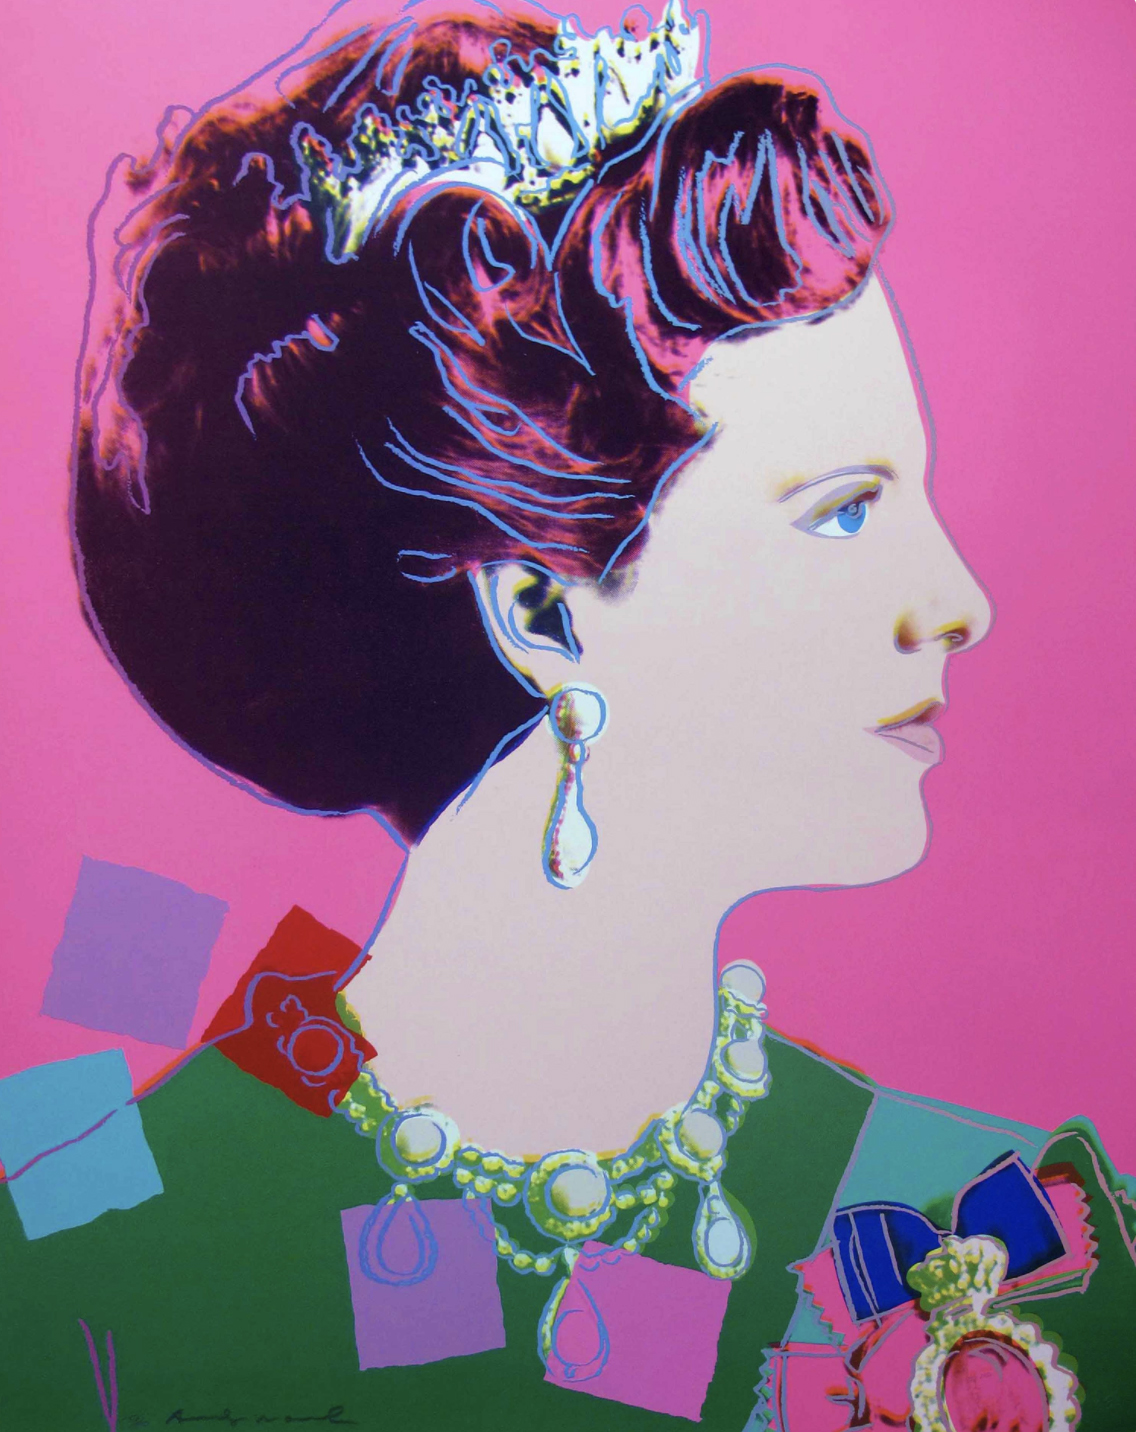 345 Queen Margrethe II by Andy Warhol